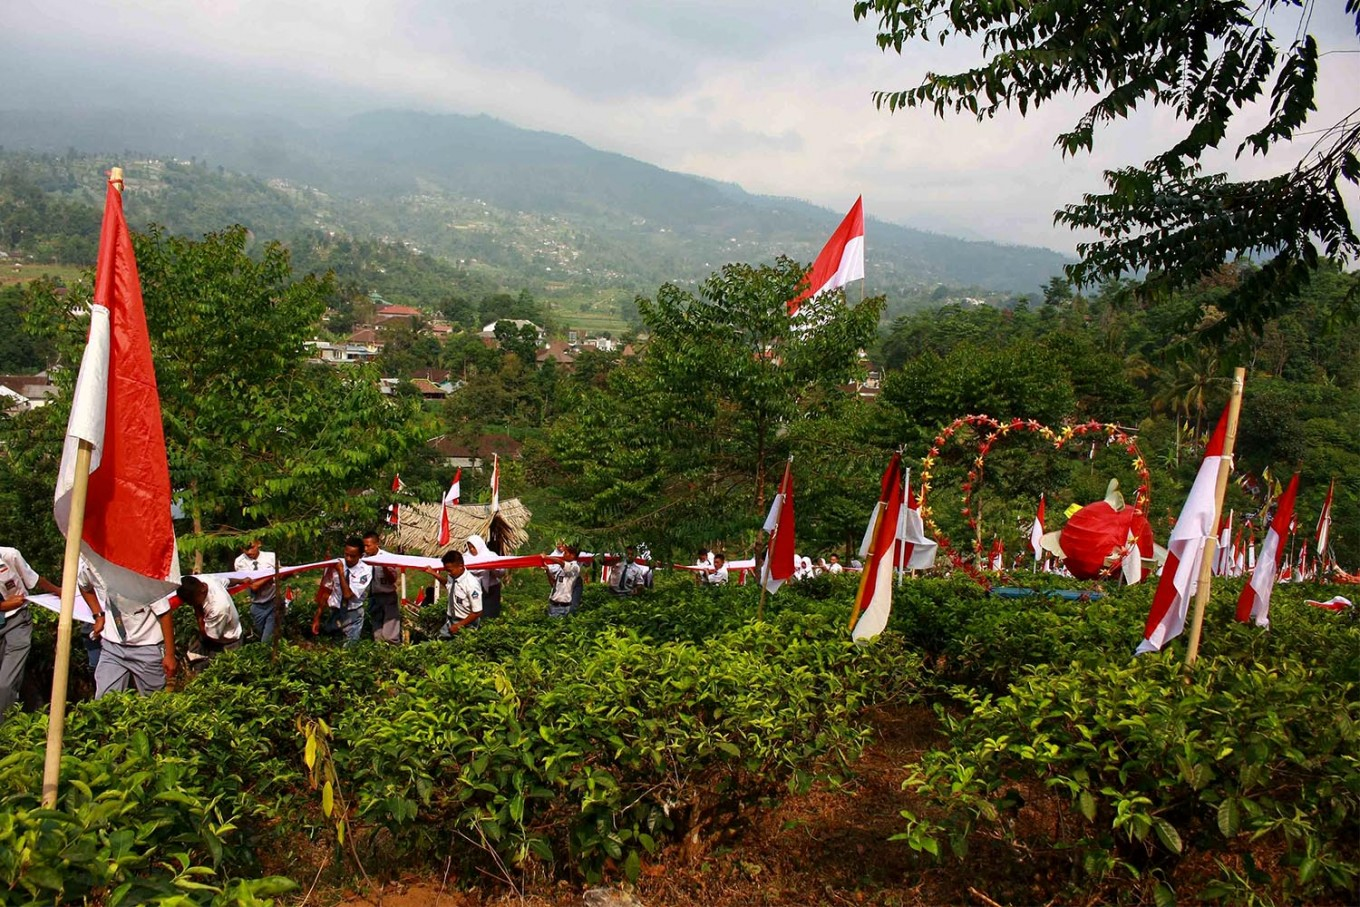 Students pass a tea plantation on the way to the top of the mountain. JP/Maksum Nur Fauzan